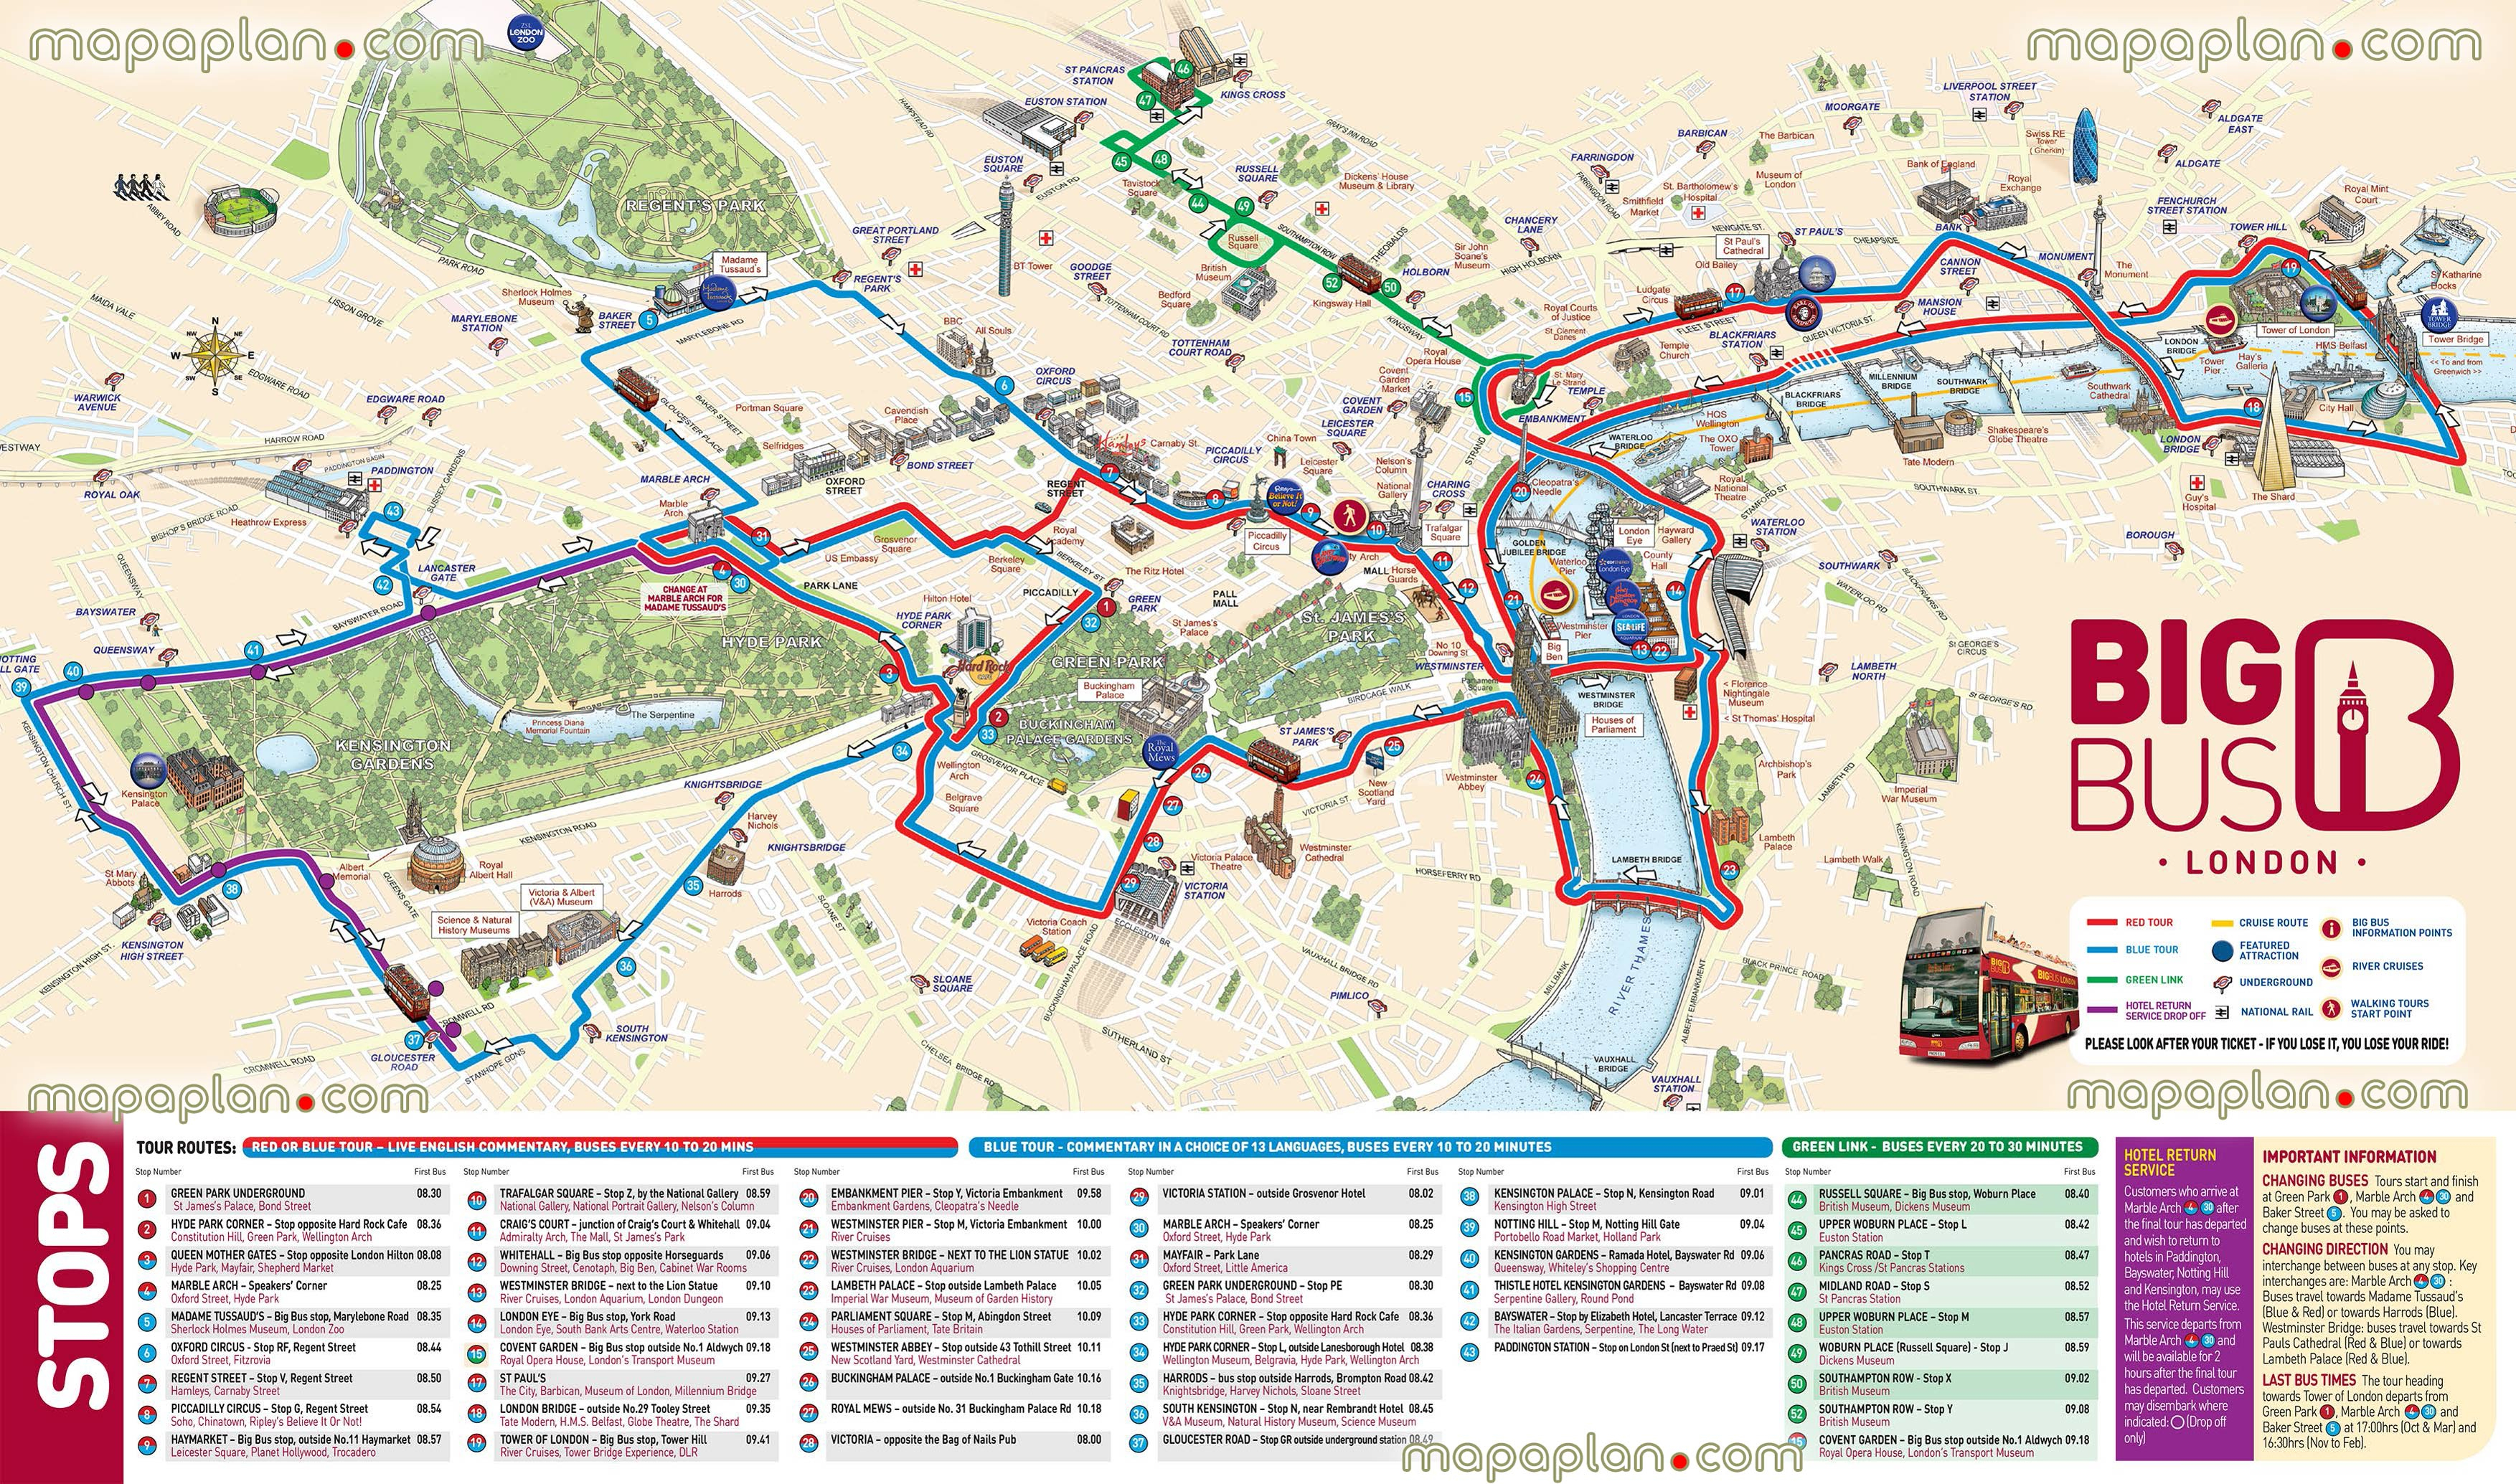 London Tourist Attractions Map Printable Download London Attractions - Printable Tourist Map Of London Attractions